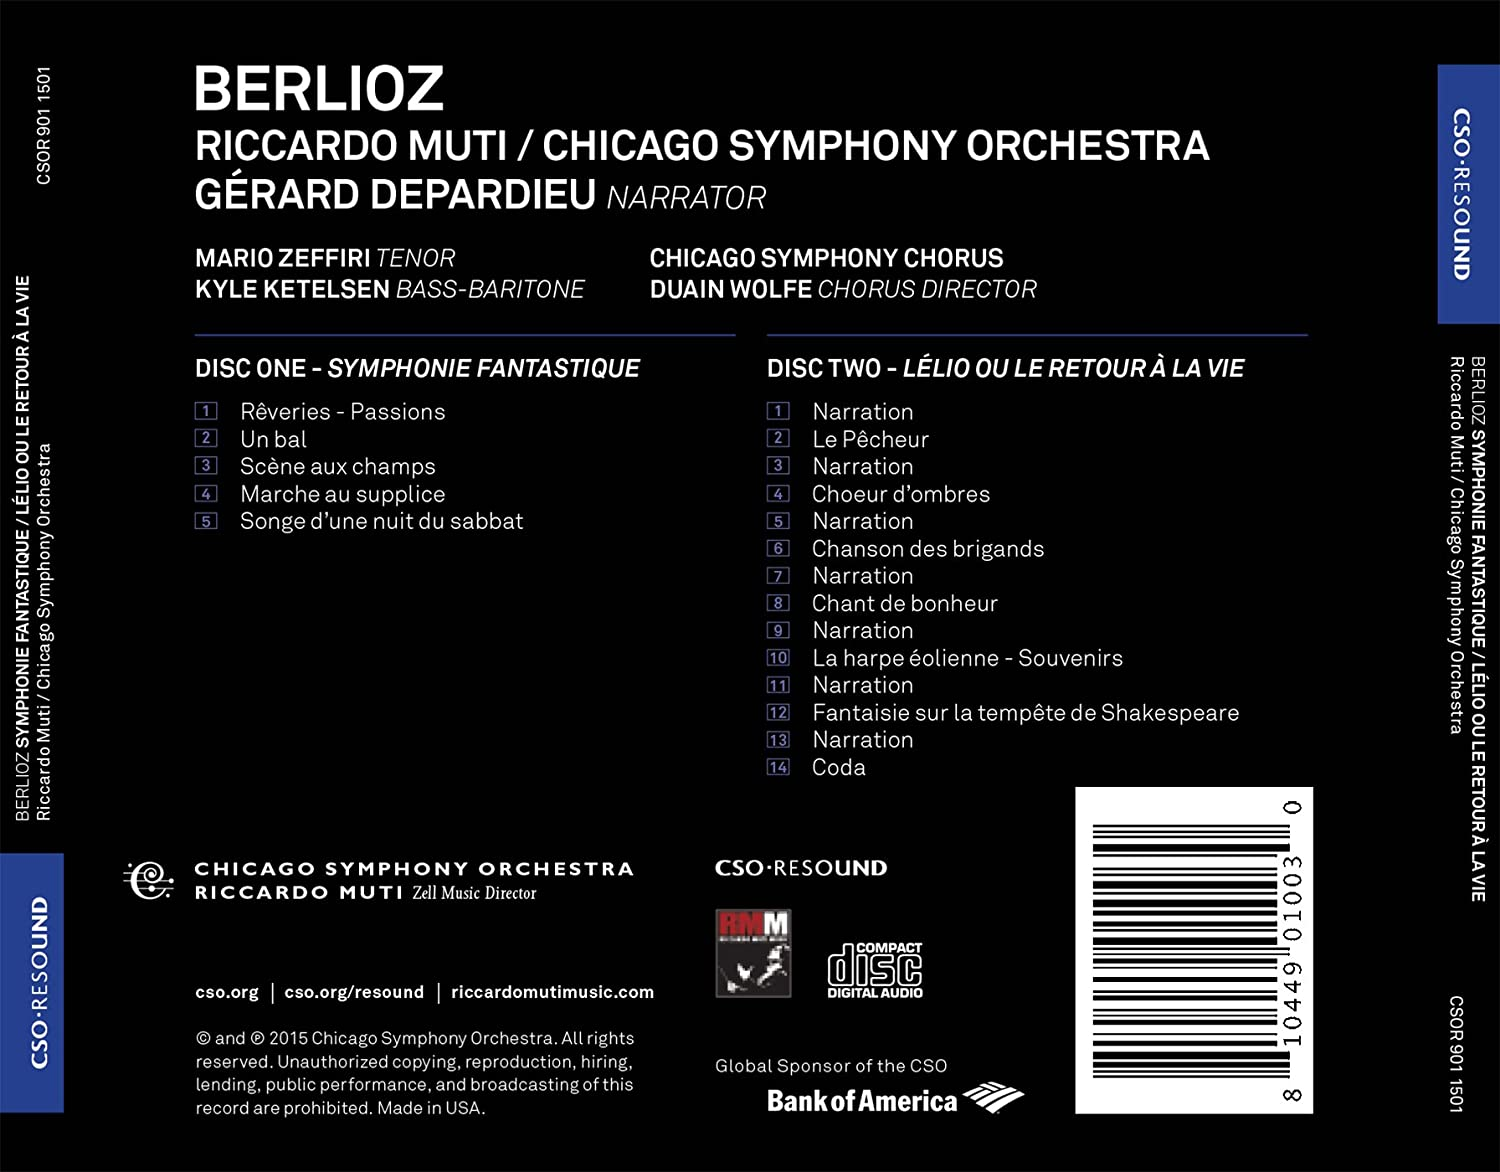 Hector Berlioz: symphonies + Lélio - Page 8 81XMtwp2RaL._SL1500_